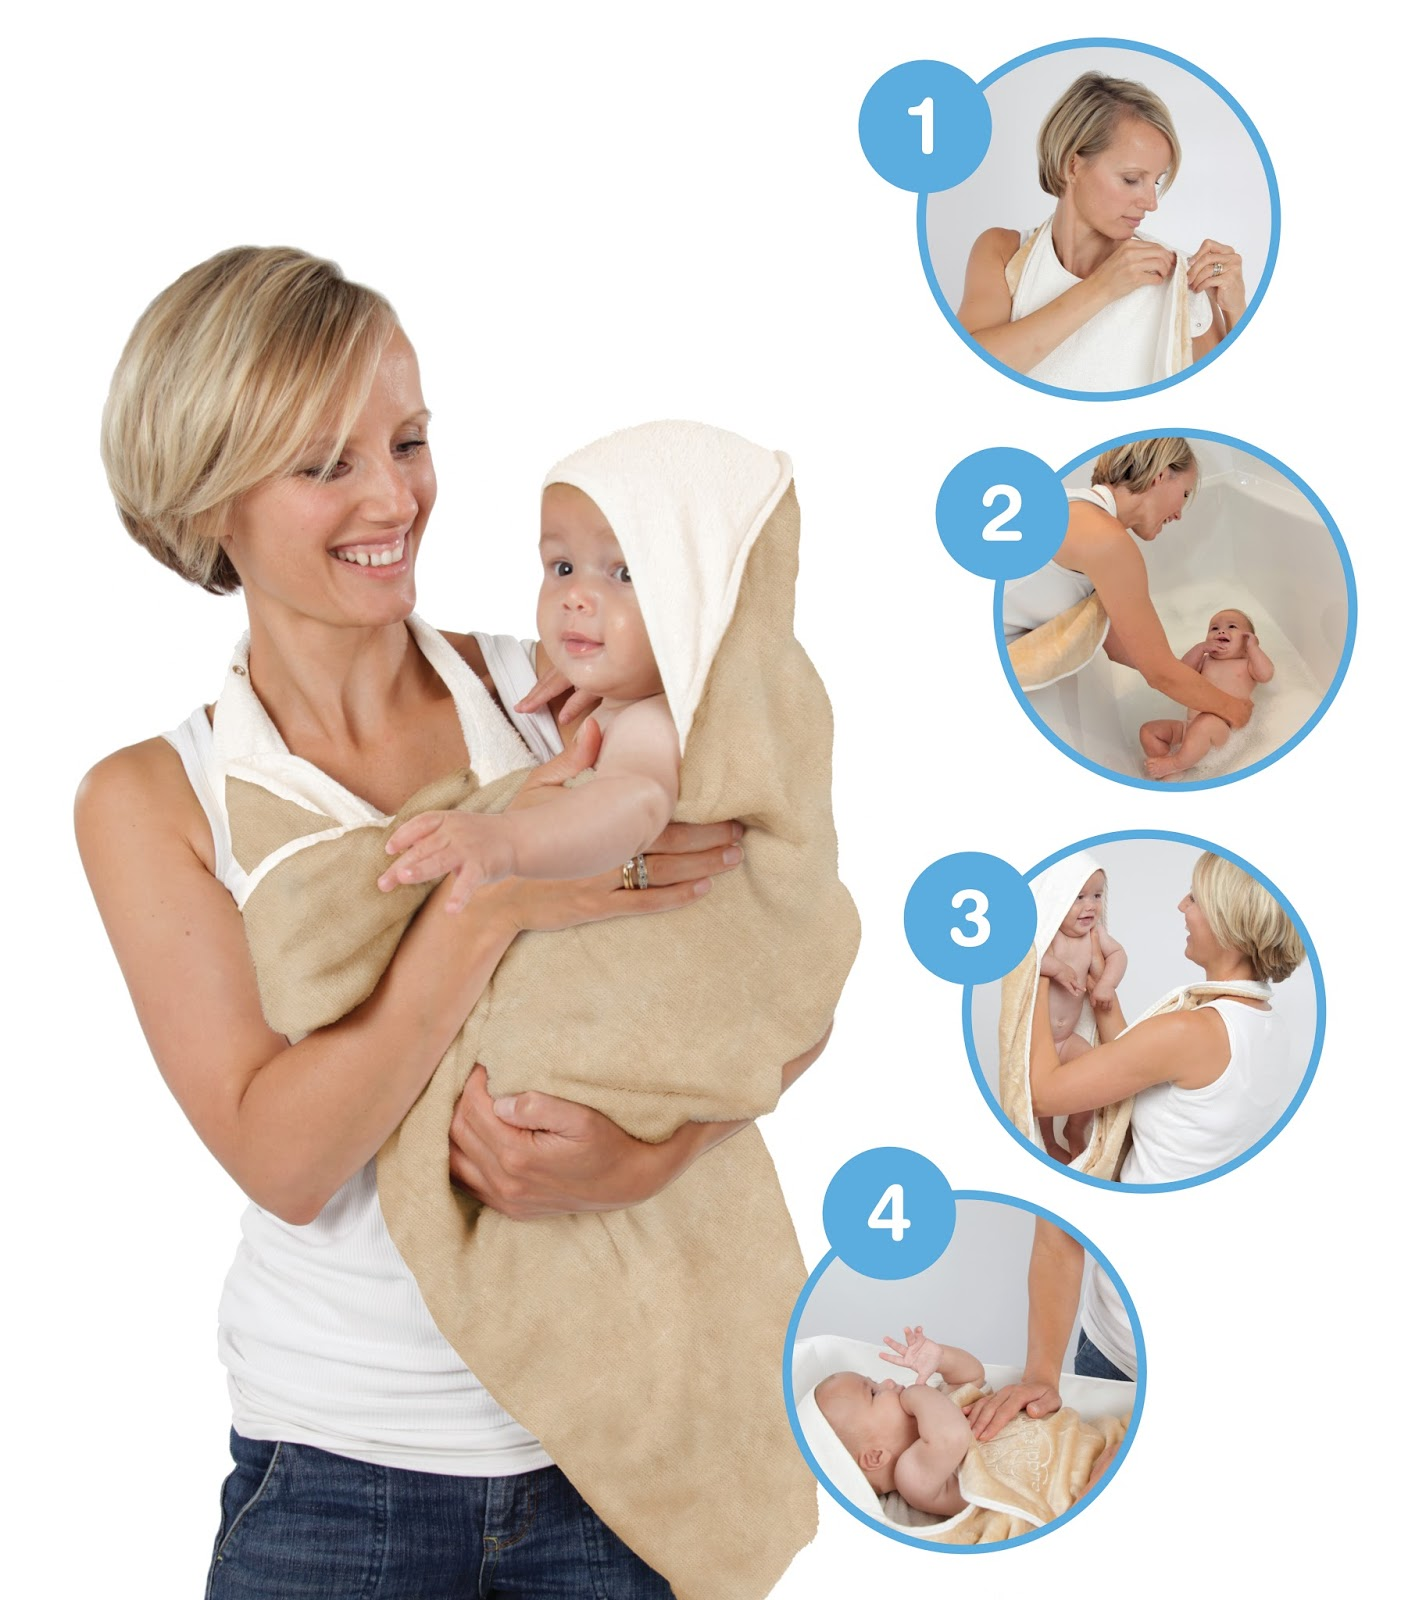 Snuggledry the Wearable Bath Time Towel - Outnumbered 3 to 1